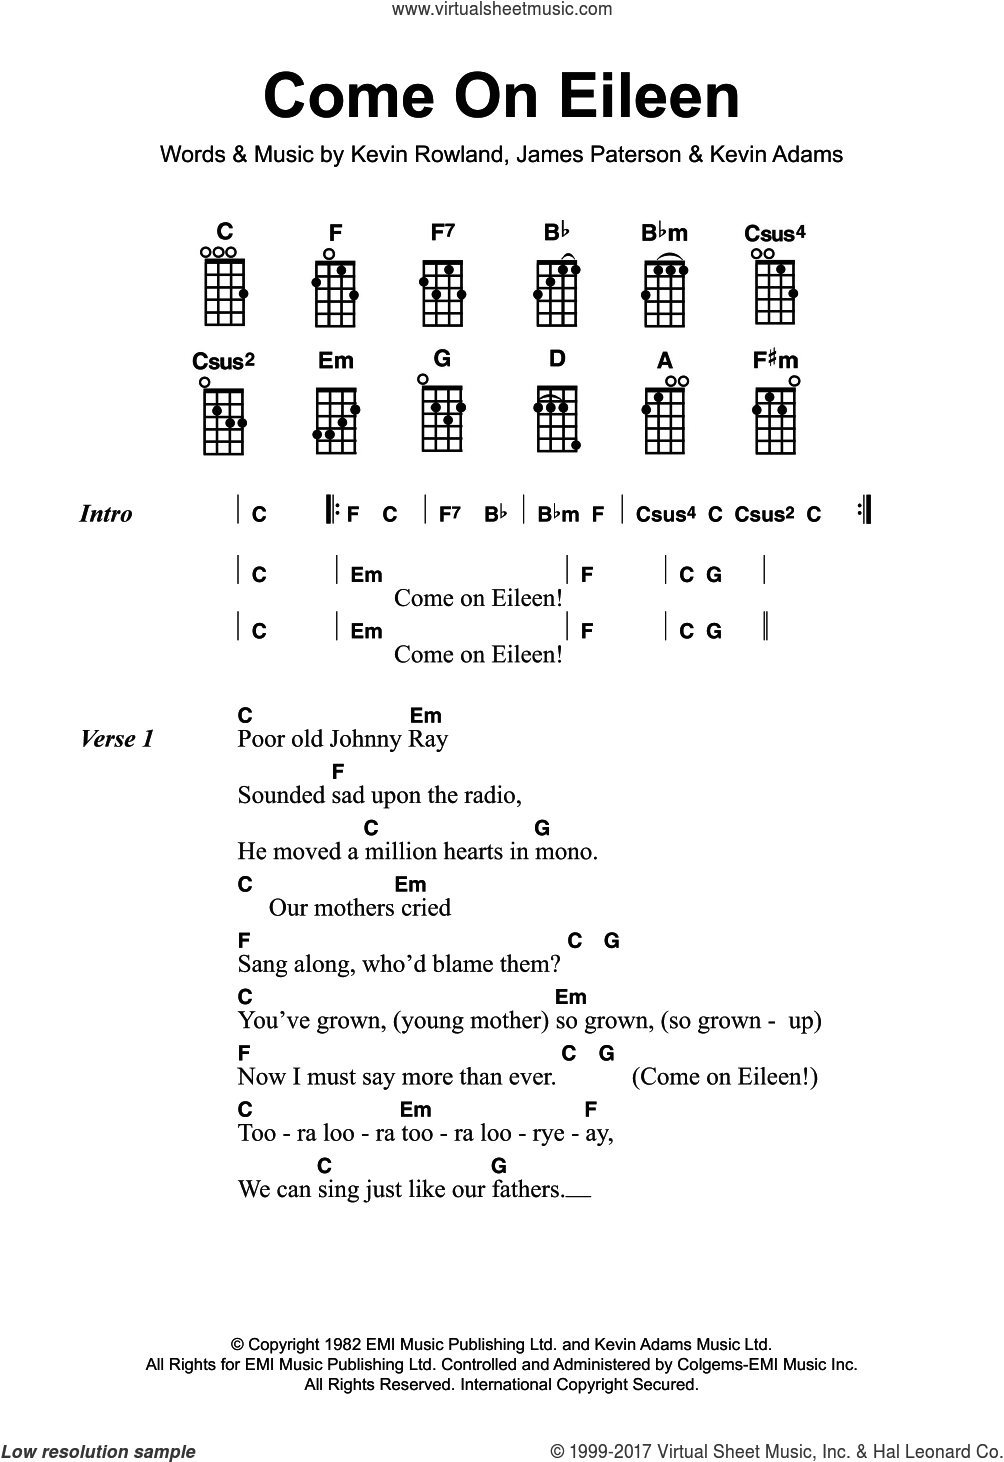 Come On Eileen sheet music for ukulele by Dexy's Midnight Runners, James Paterson, Kevin Adams and Kevin Rowland, intermediate skill level